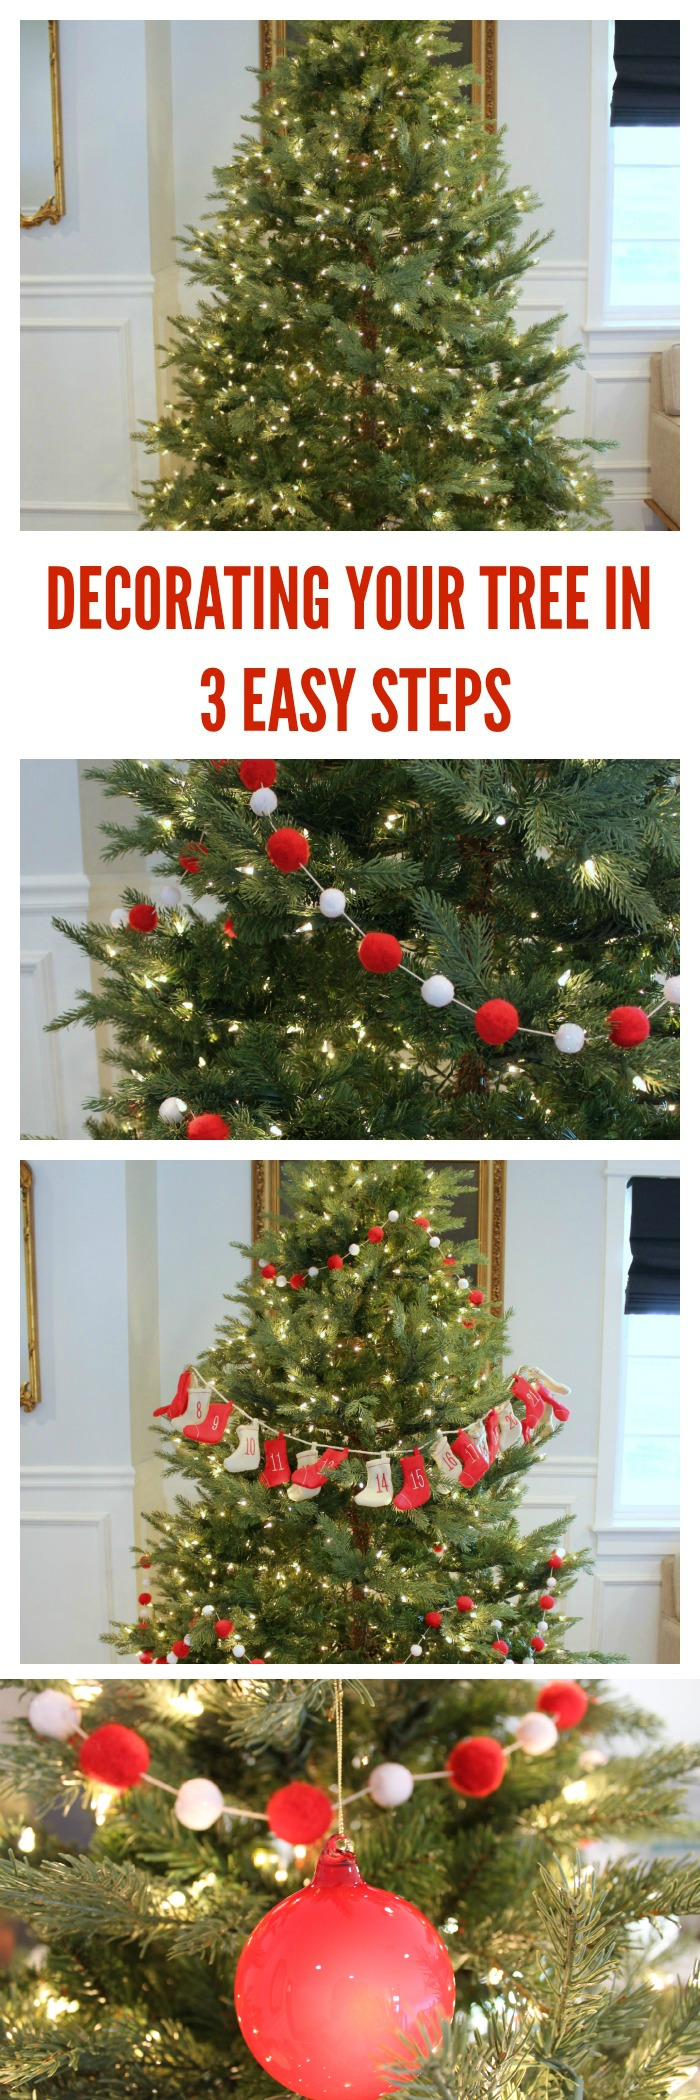 How To Decorate A Christmas Tree Dream Book Design